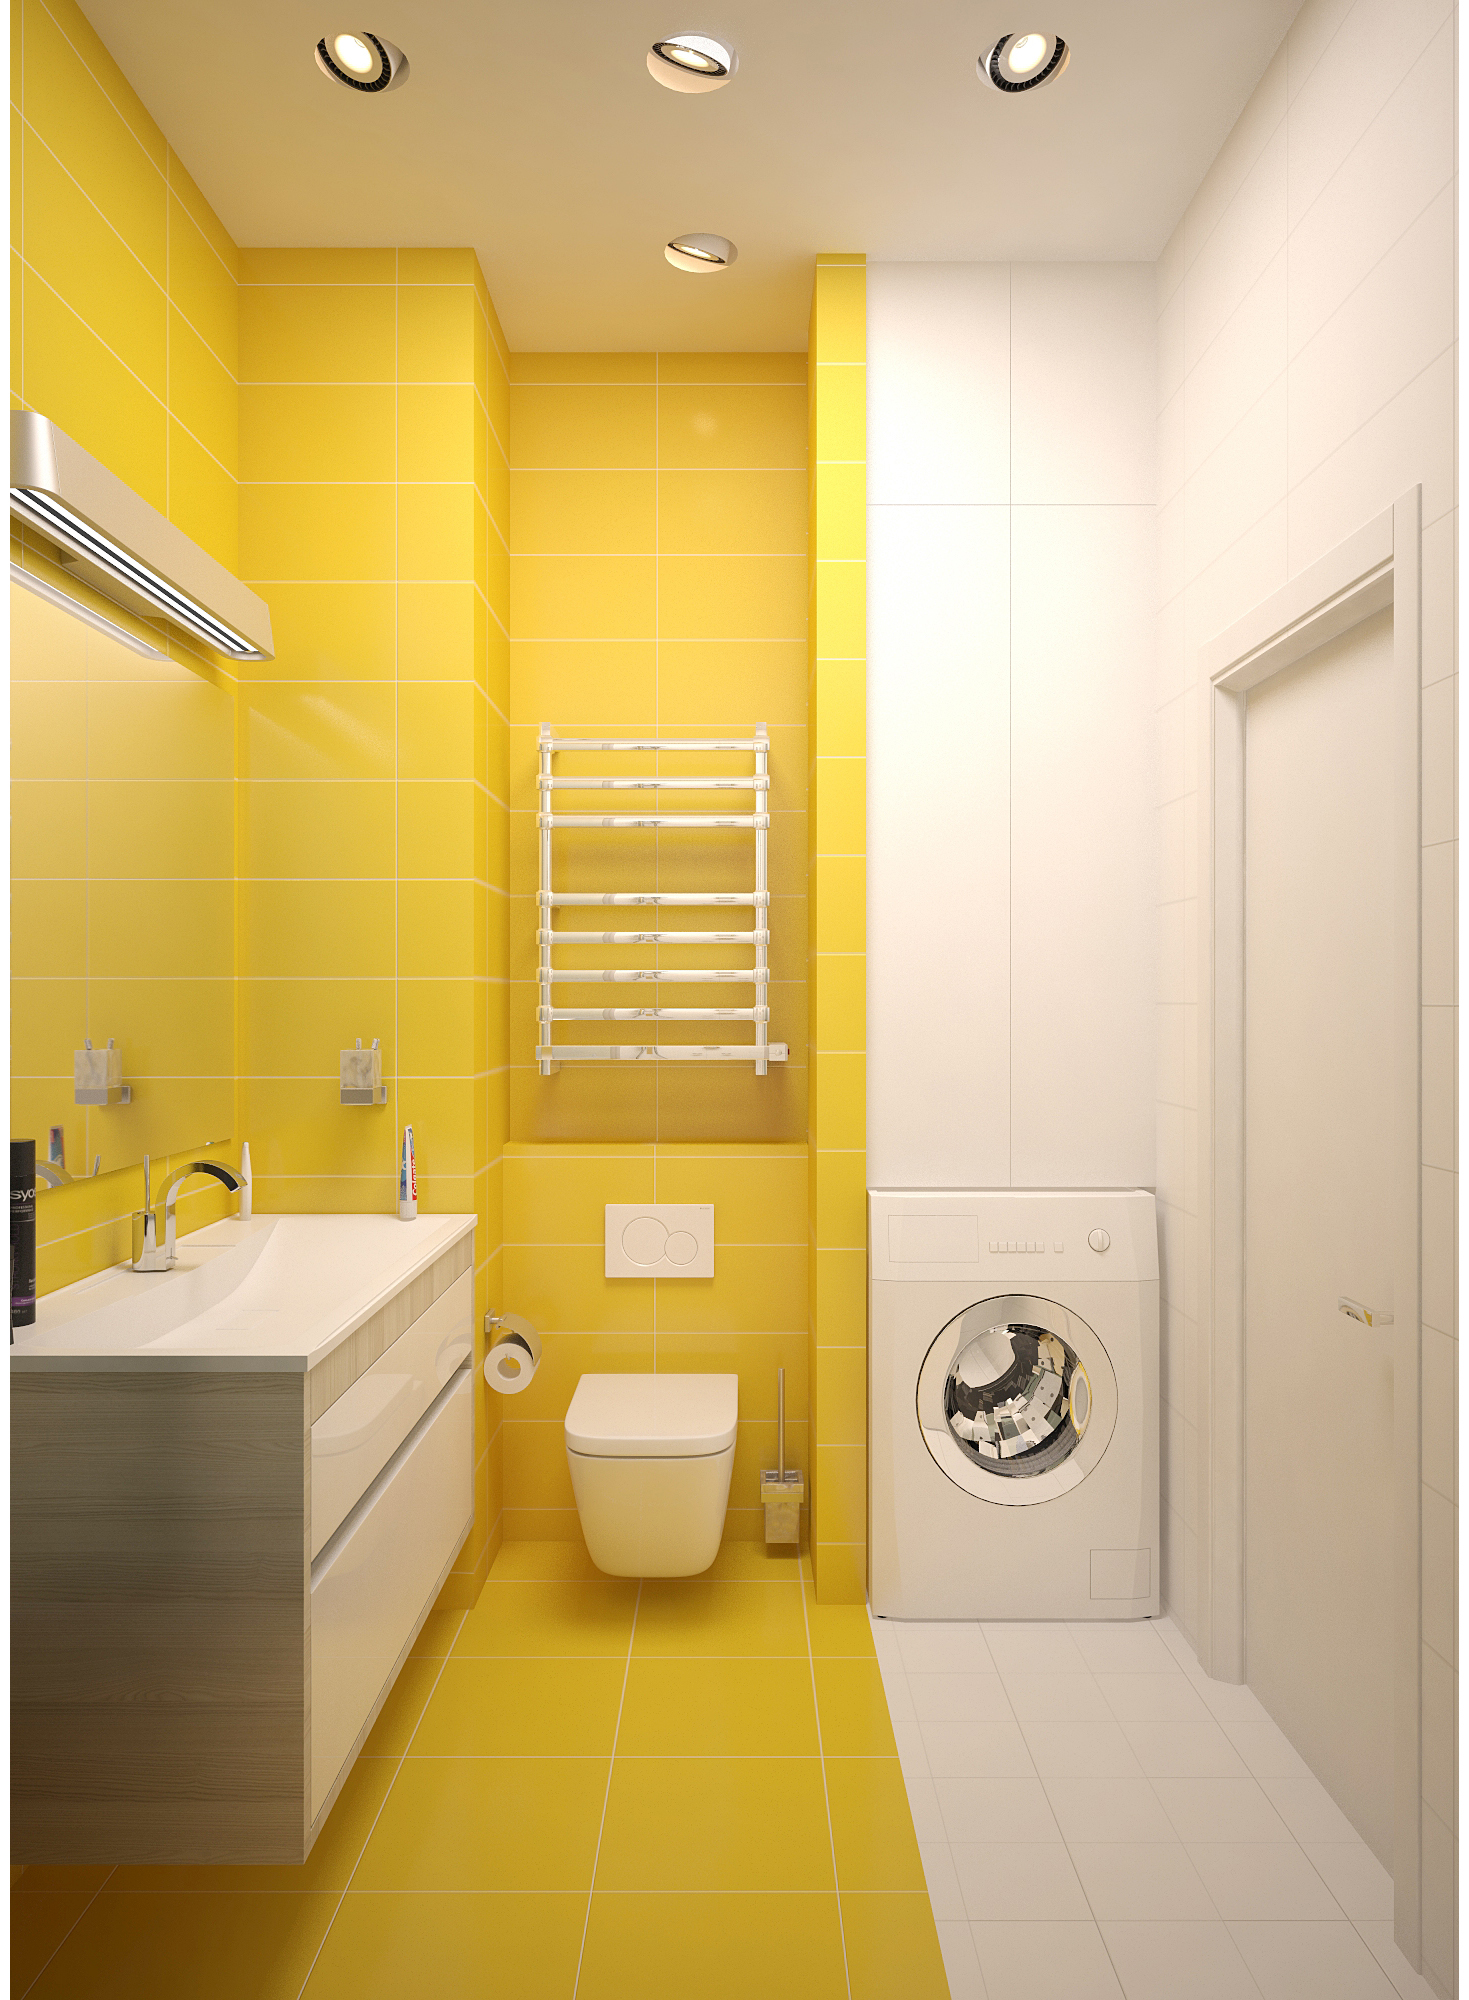 Copy of Yellow and white bathroom interior